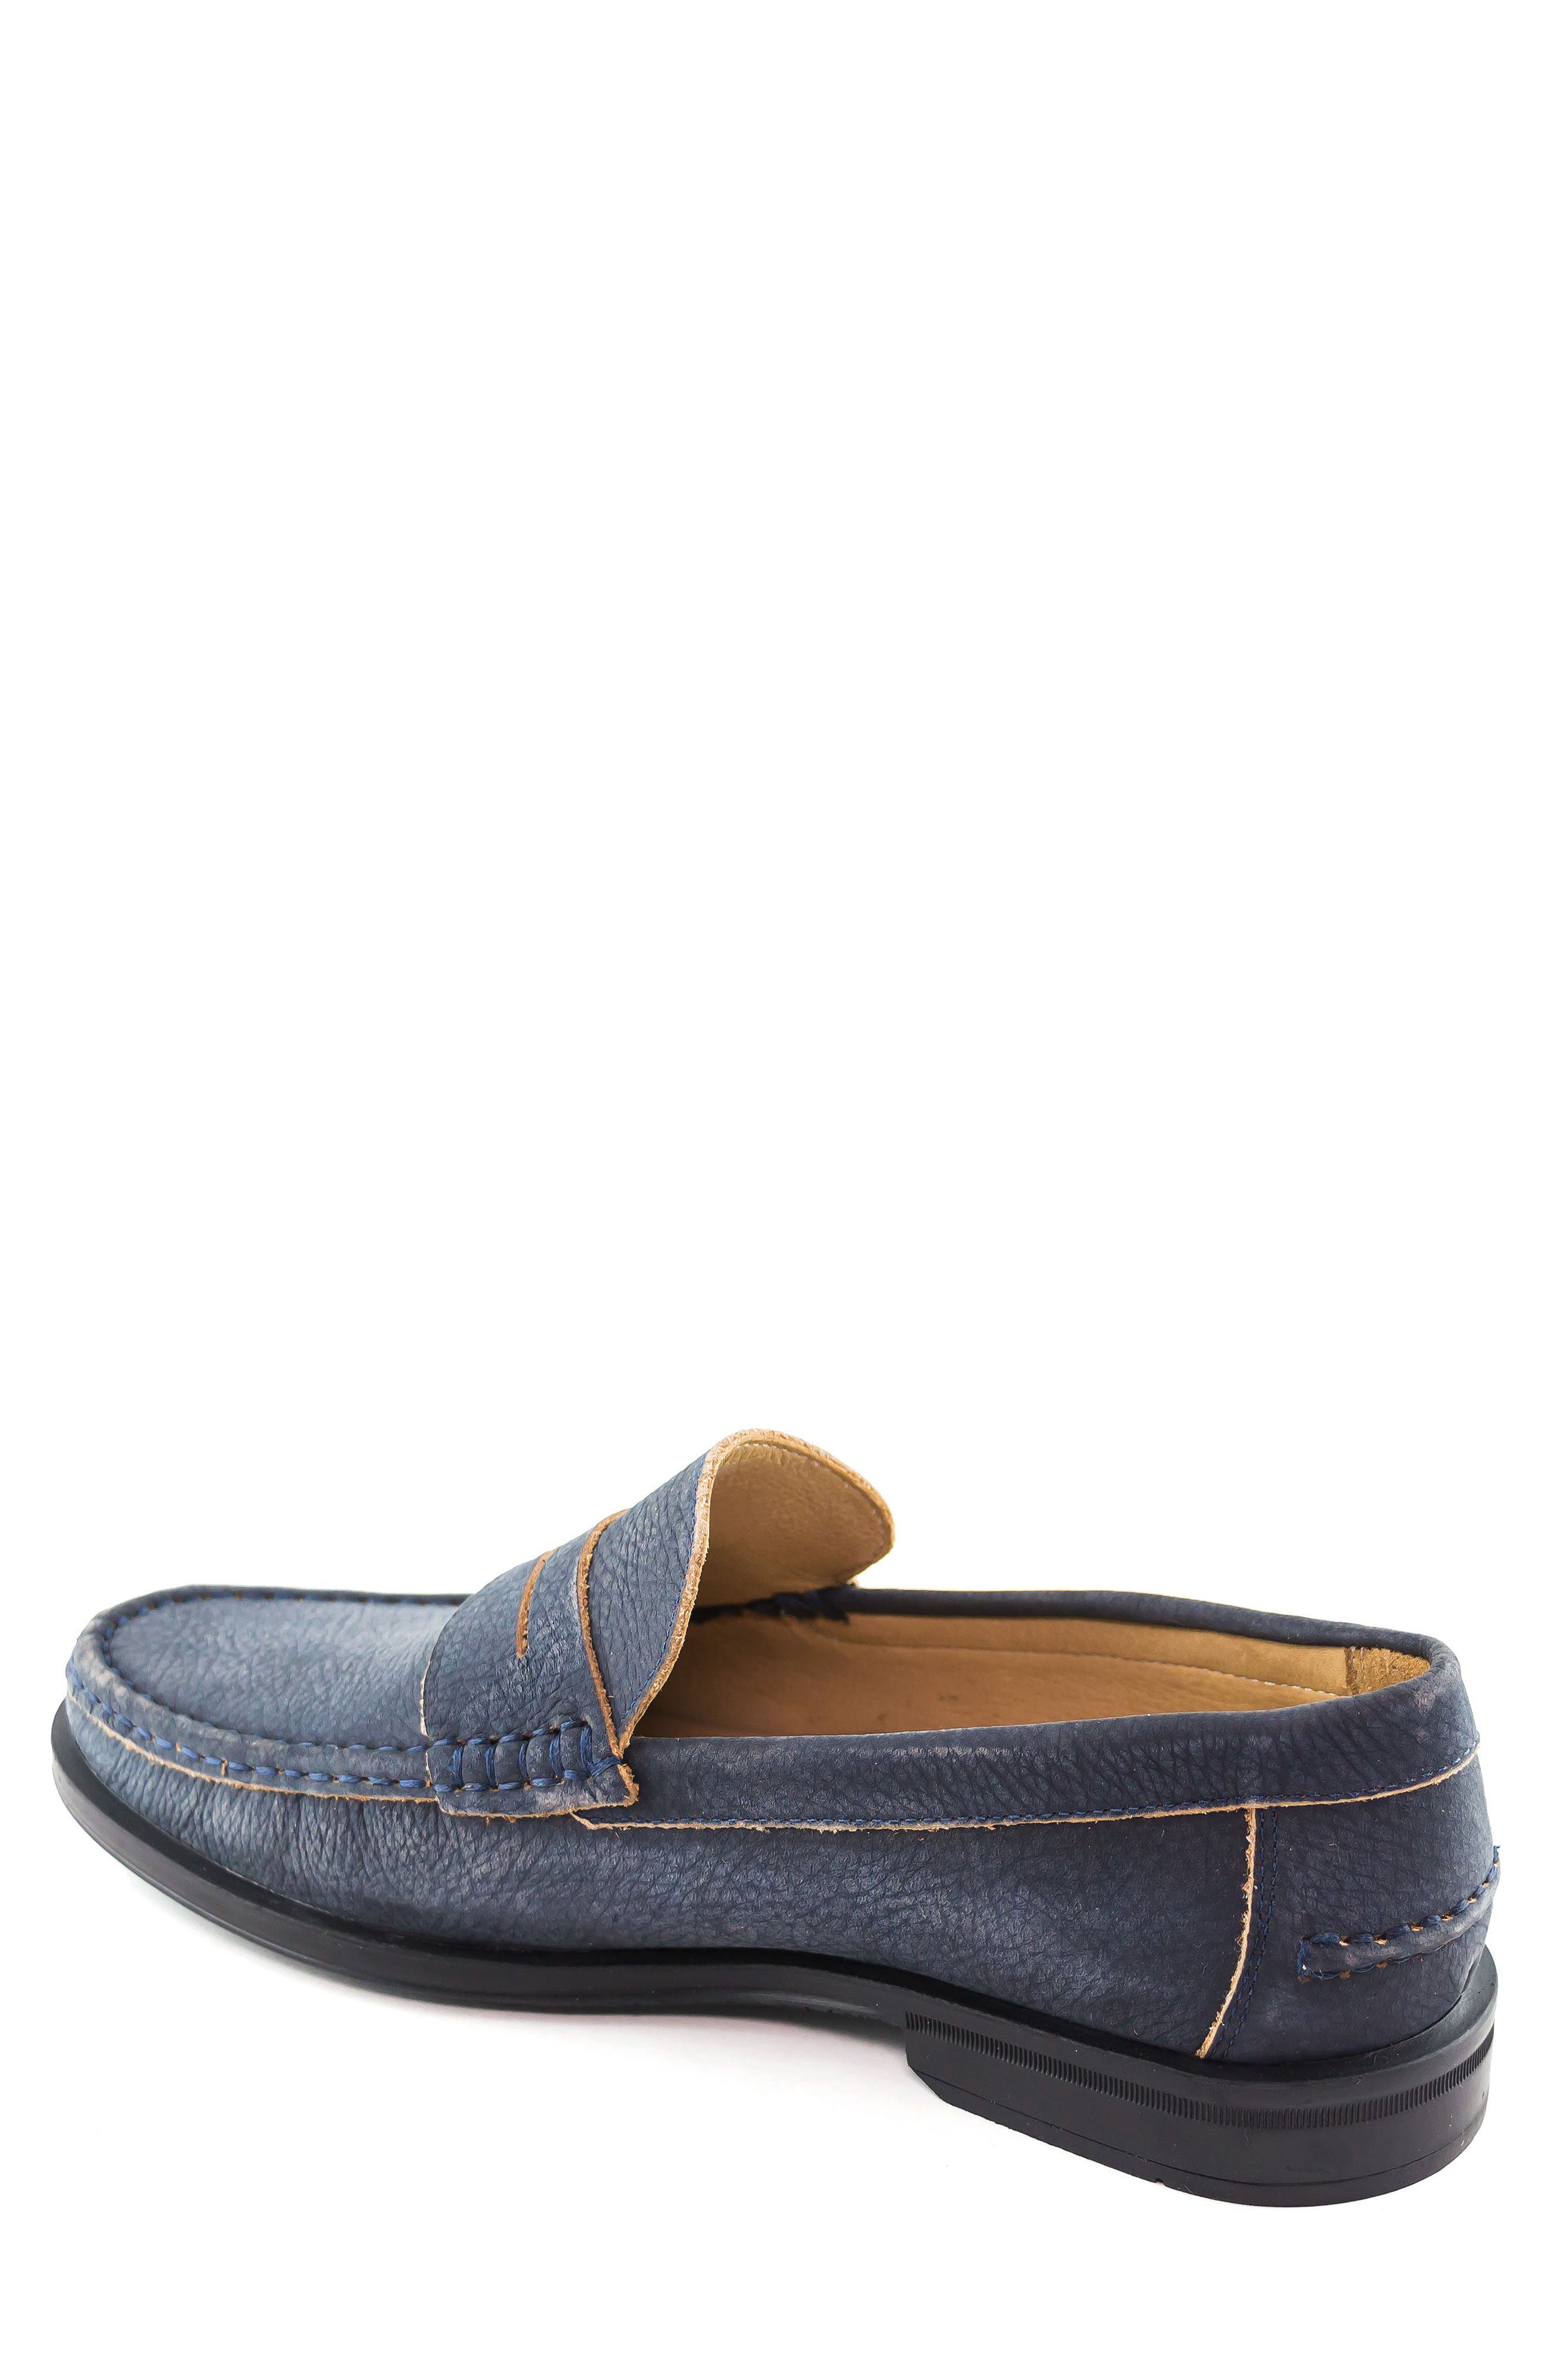 Cortland Penny Loafer,                             Alternate thumbnail 2, color,                             Navy